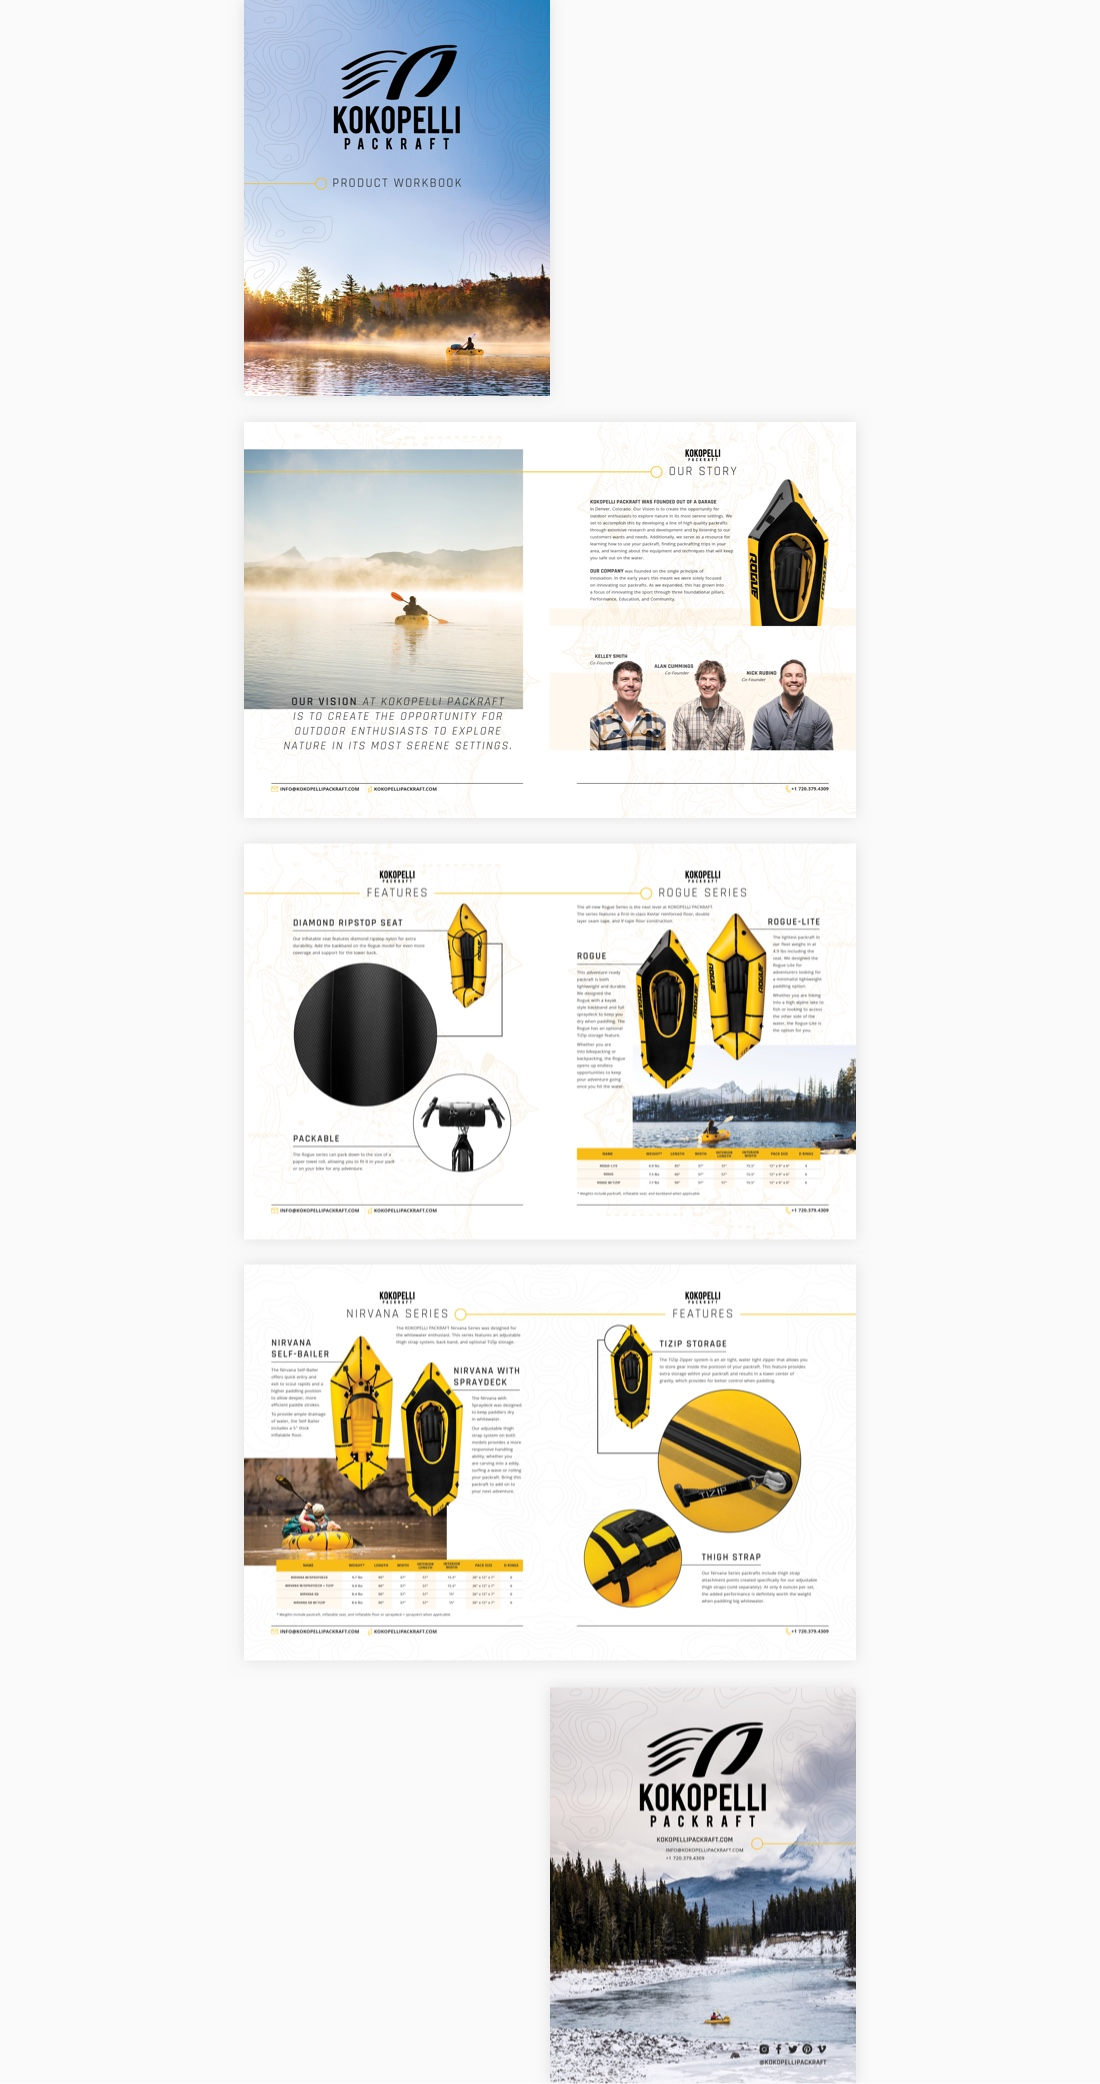 Kokopelli Packraft Product Workbook